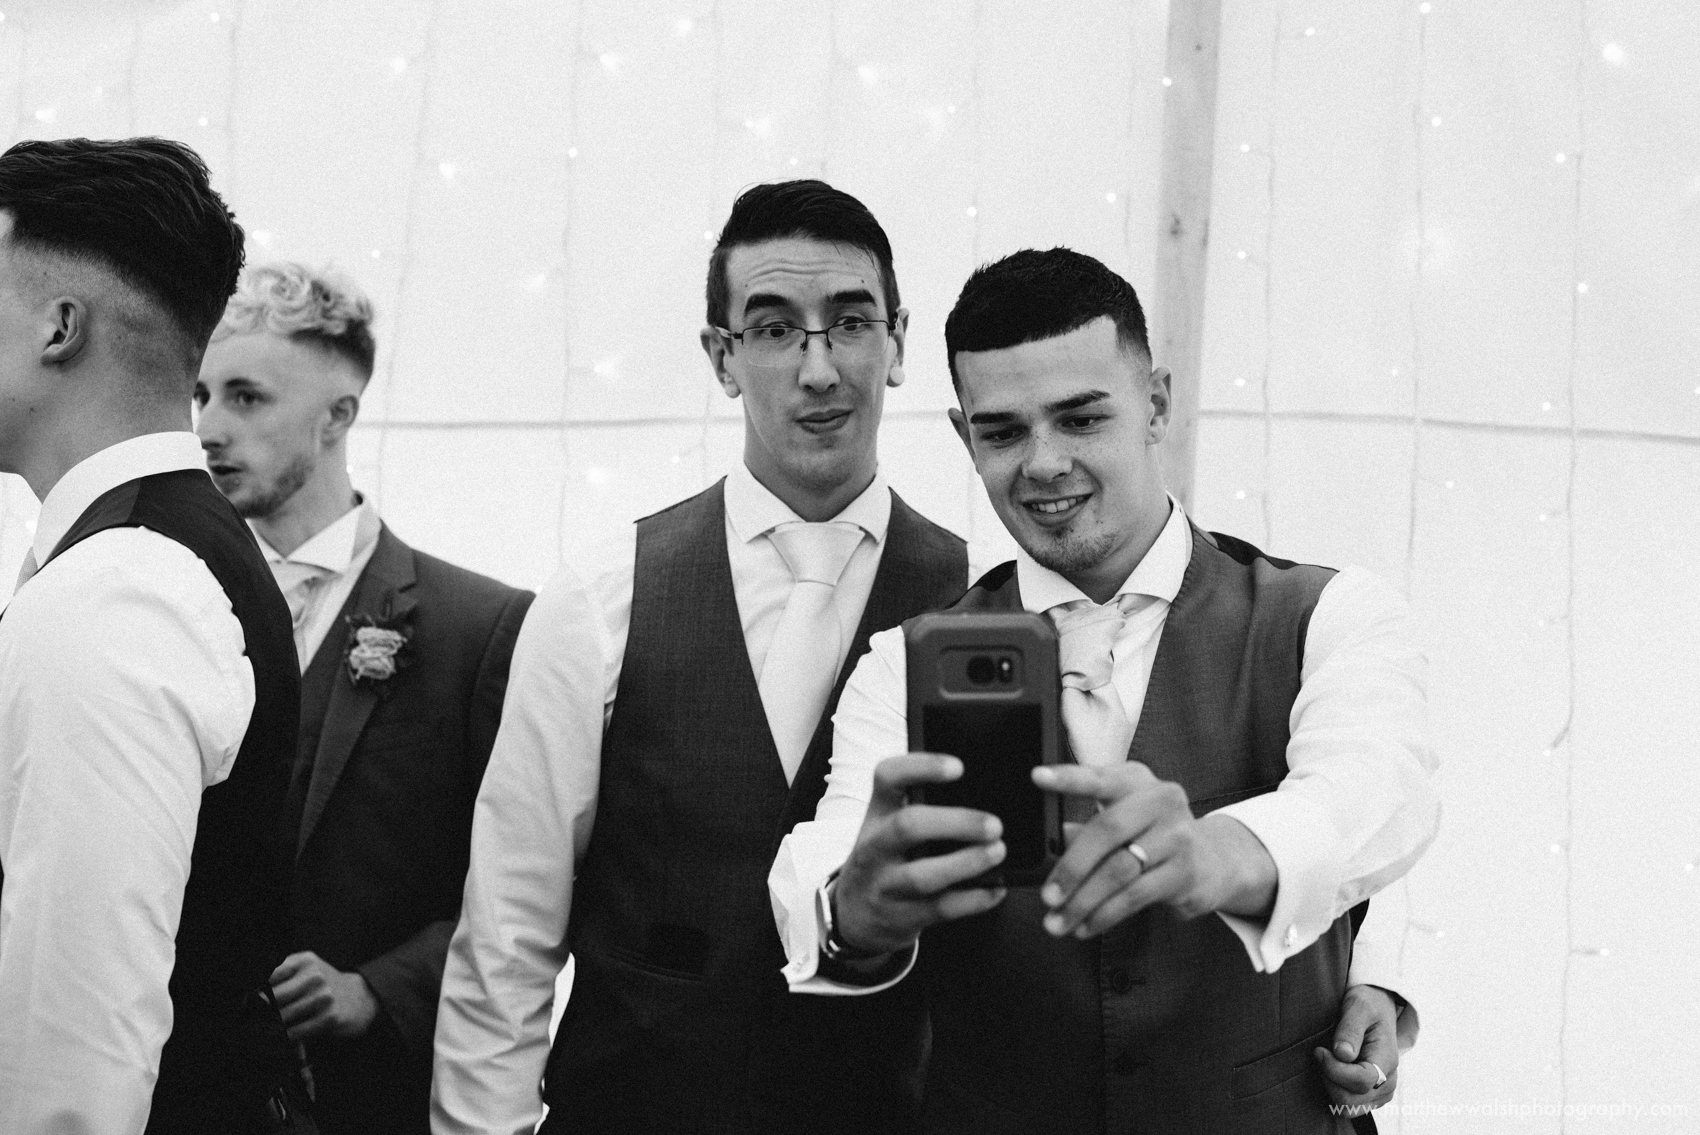 The groom and his brother take a selfie